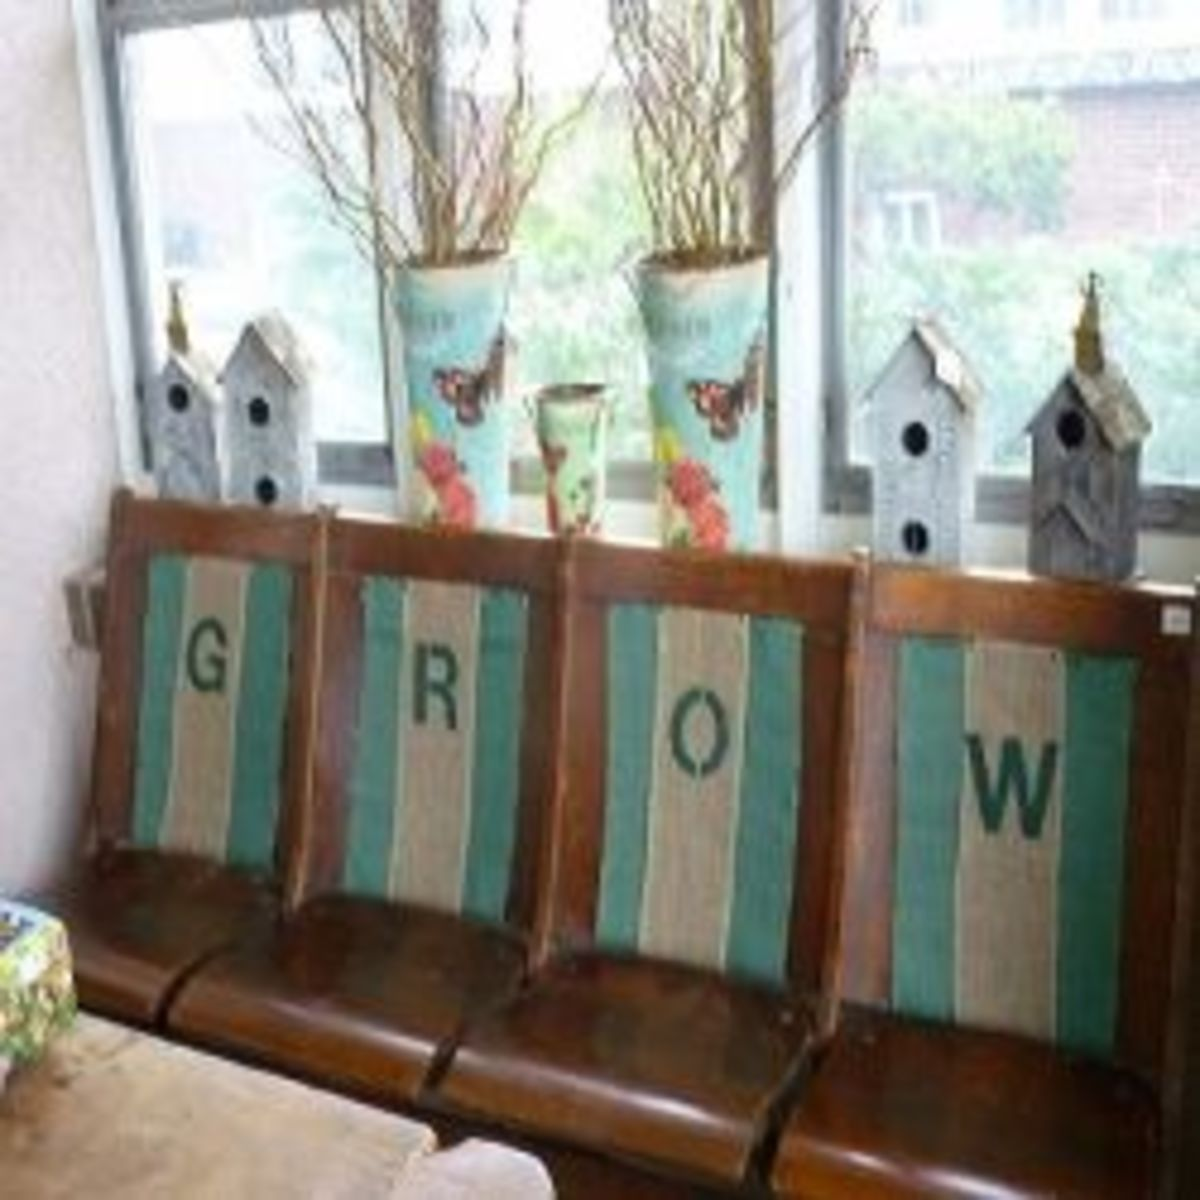 Let's Grow! Upcycled Gardening Ideas